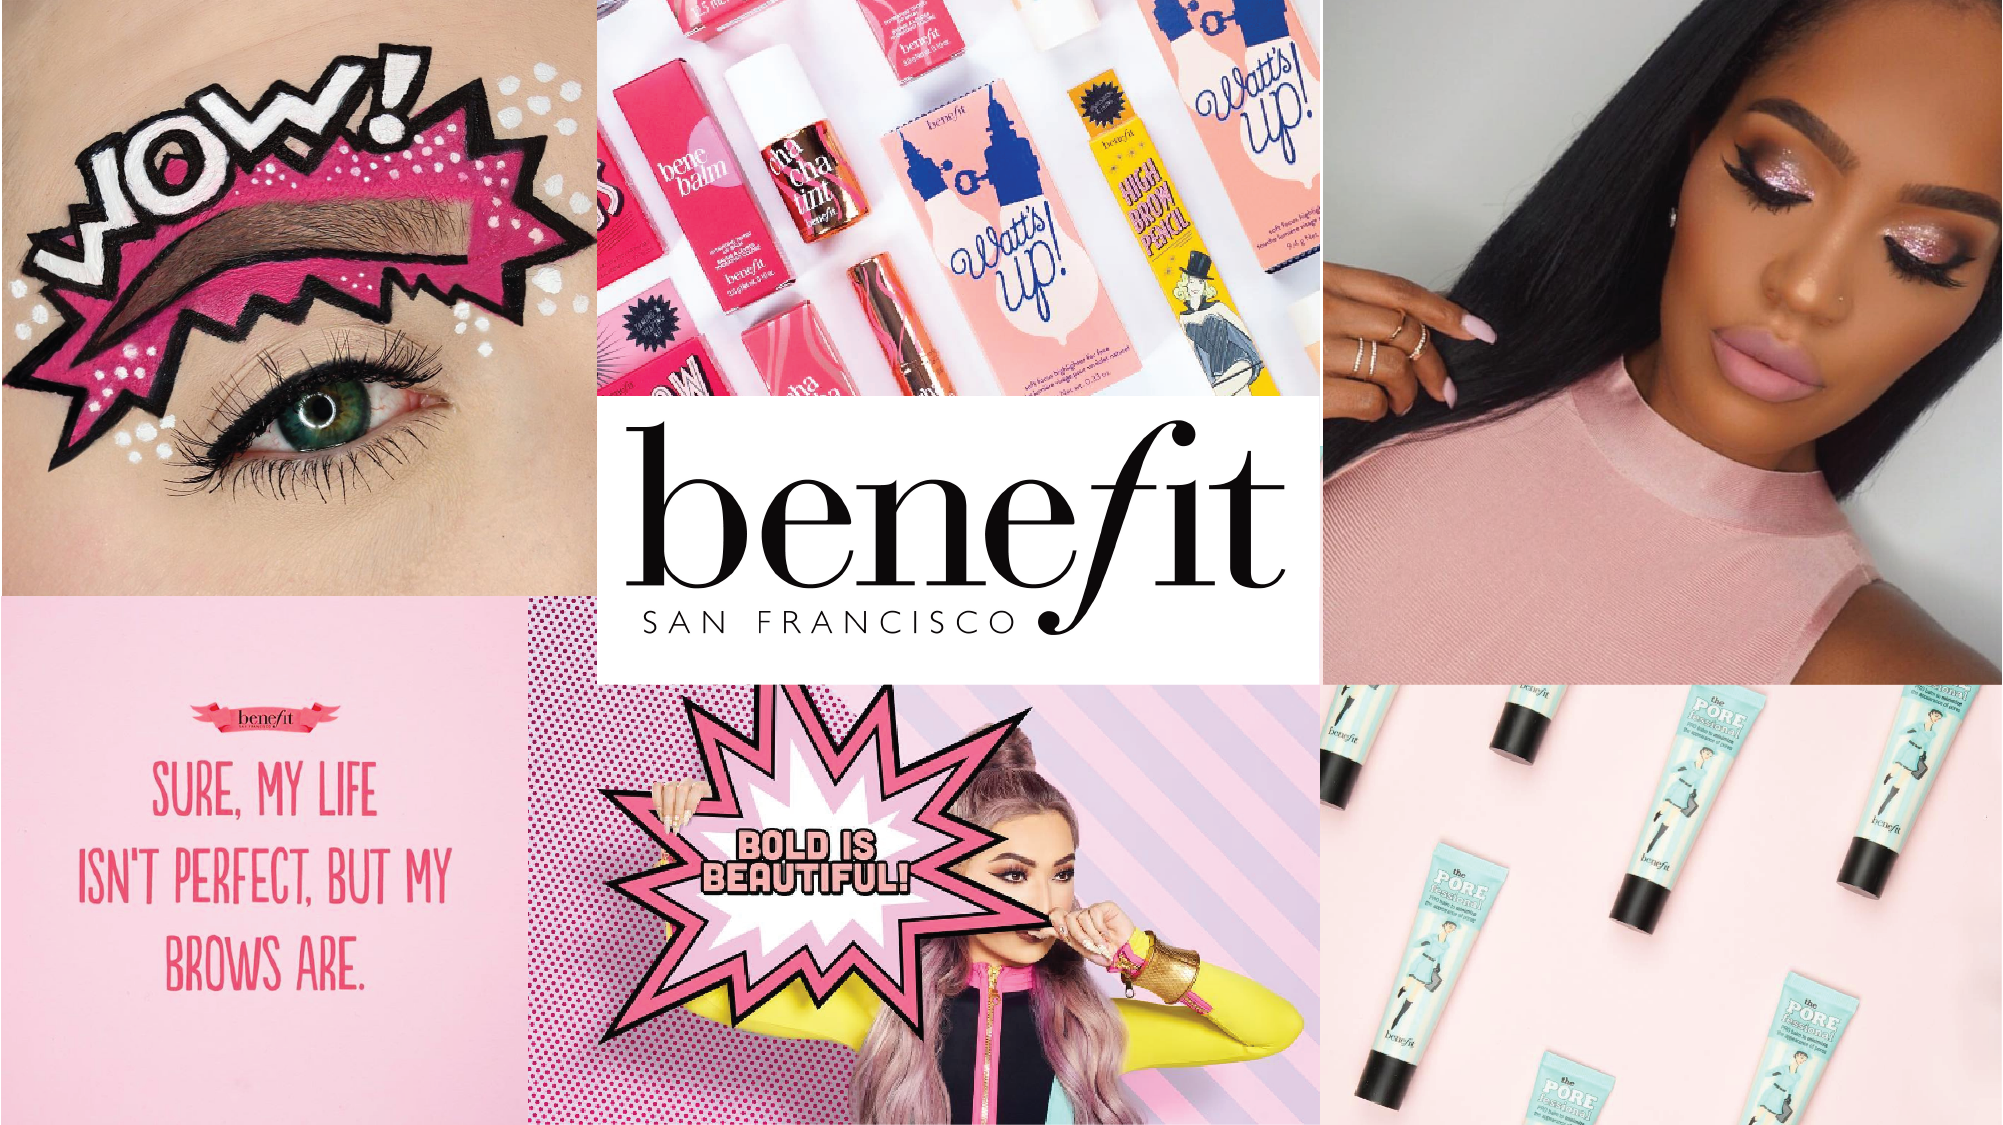 Benefit cosmetics social media content.png